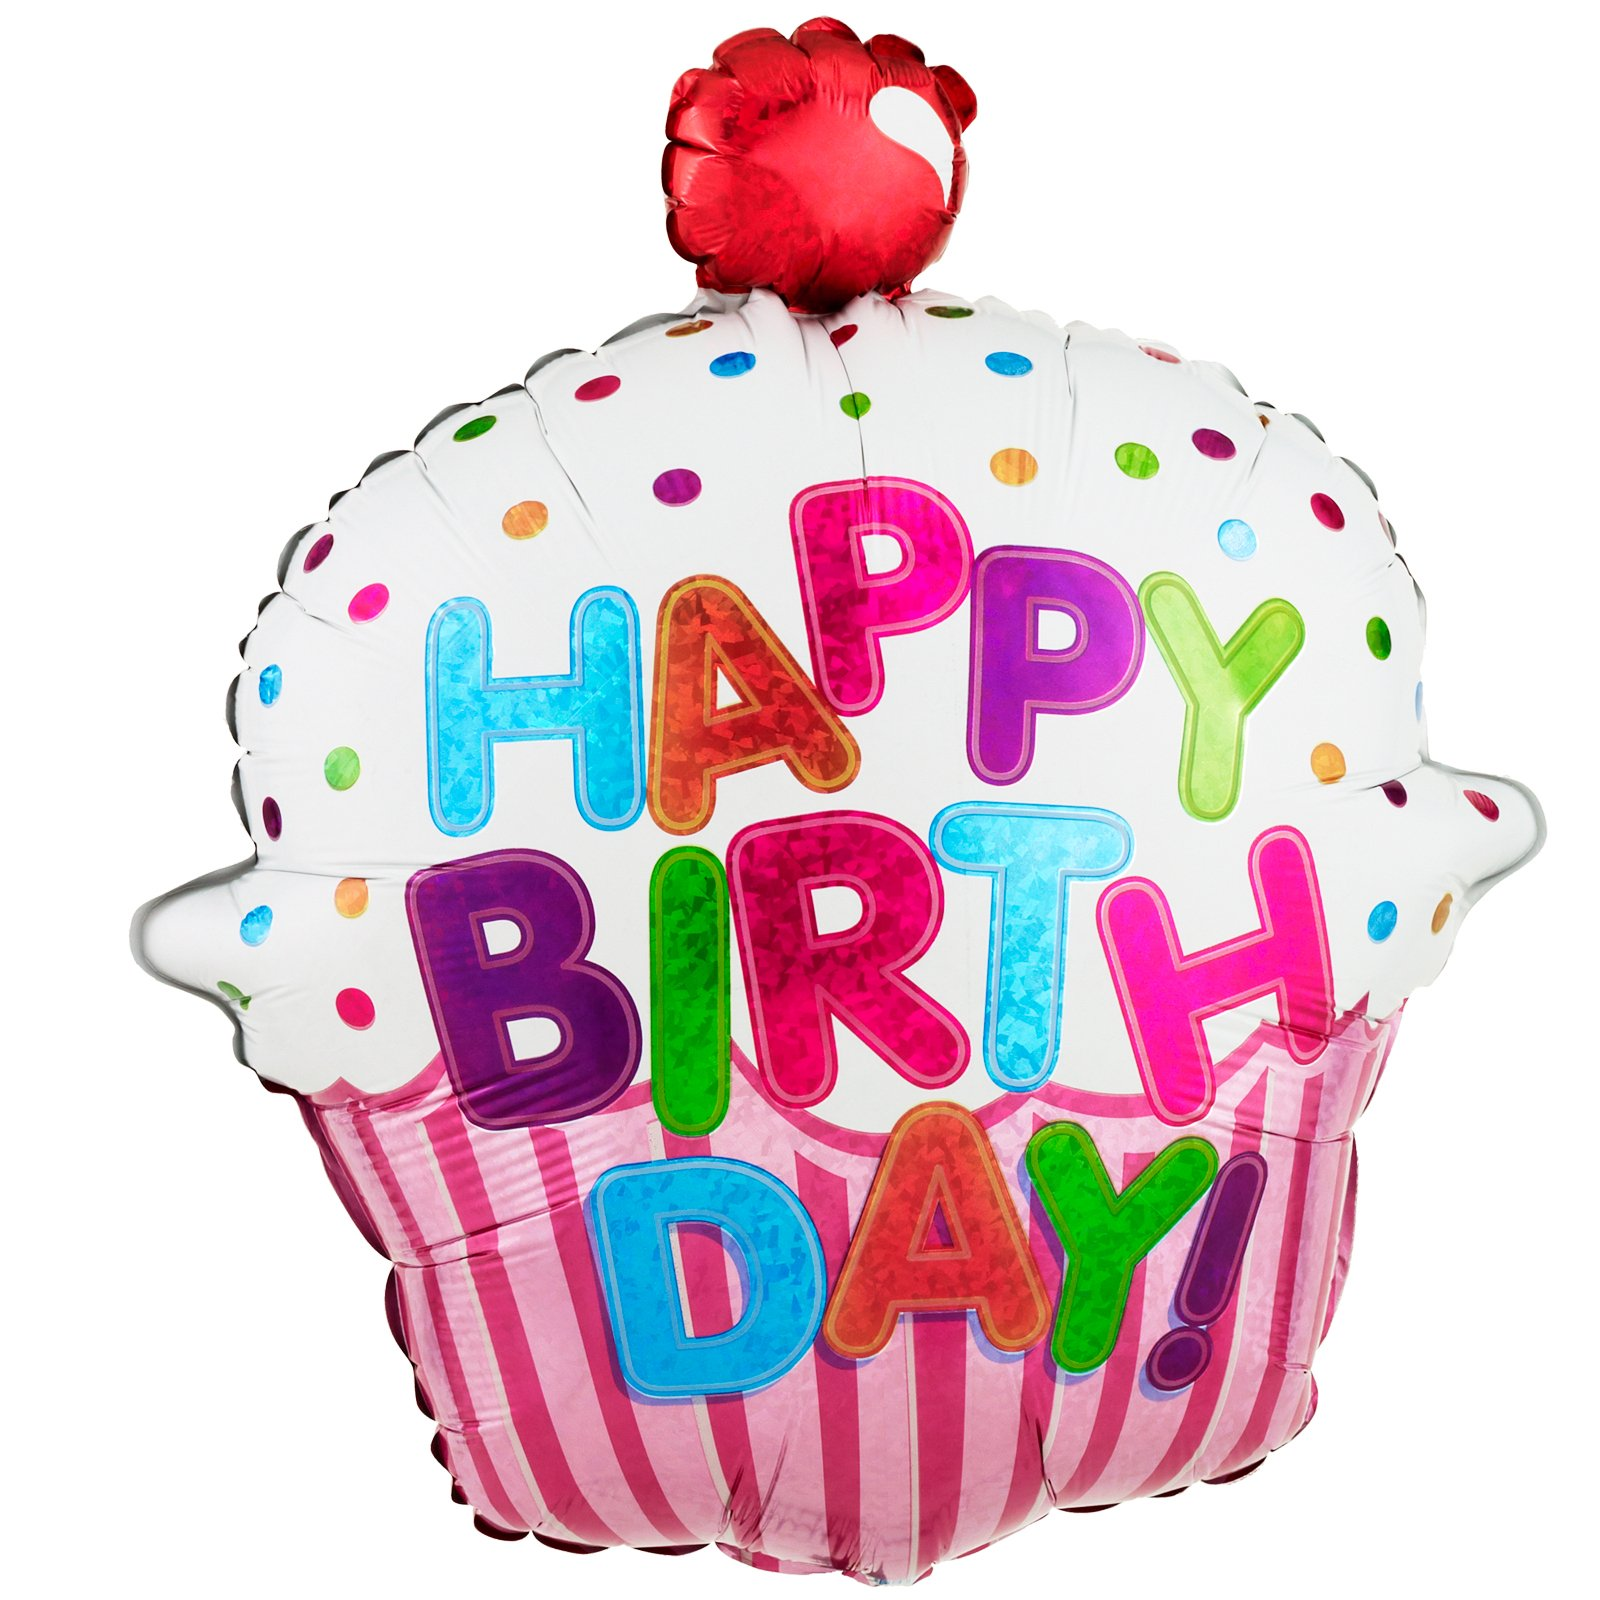 Download Free Happy Birthday Wallpapers   Most beautiful places in ...